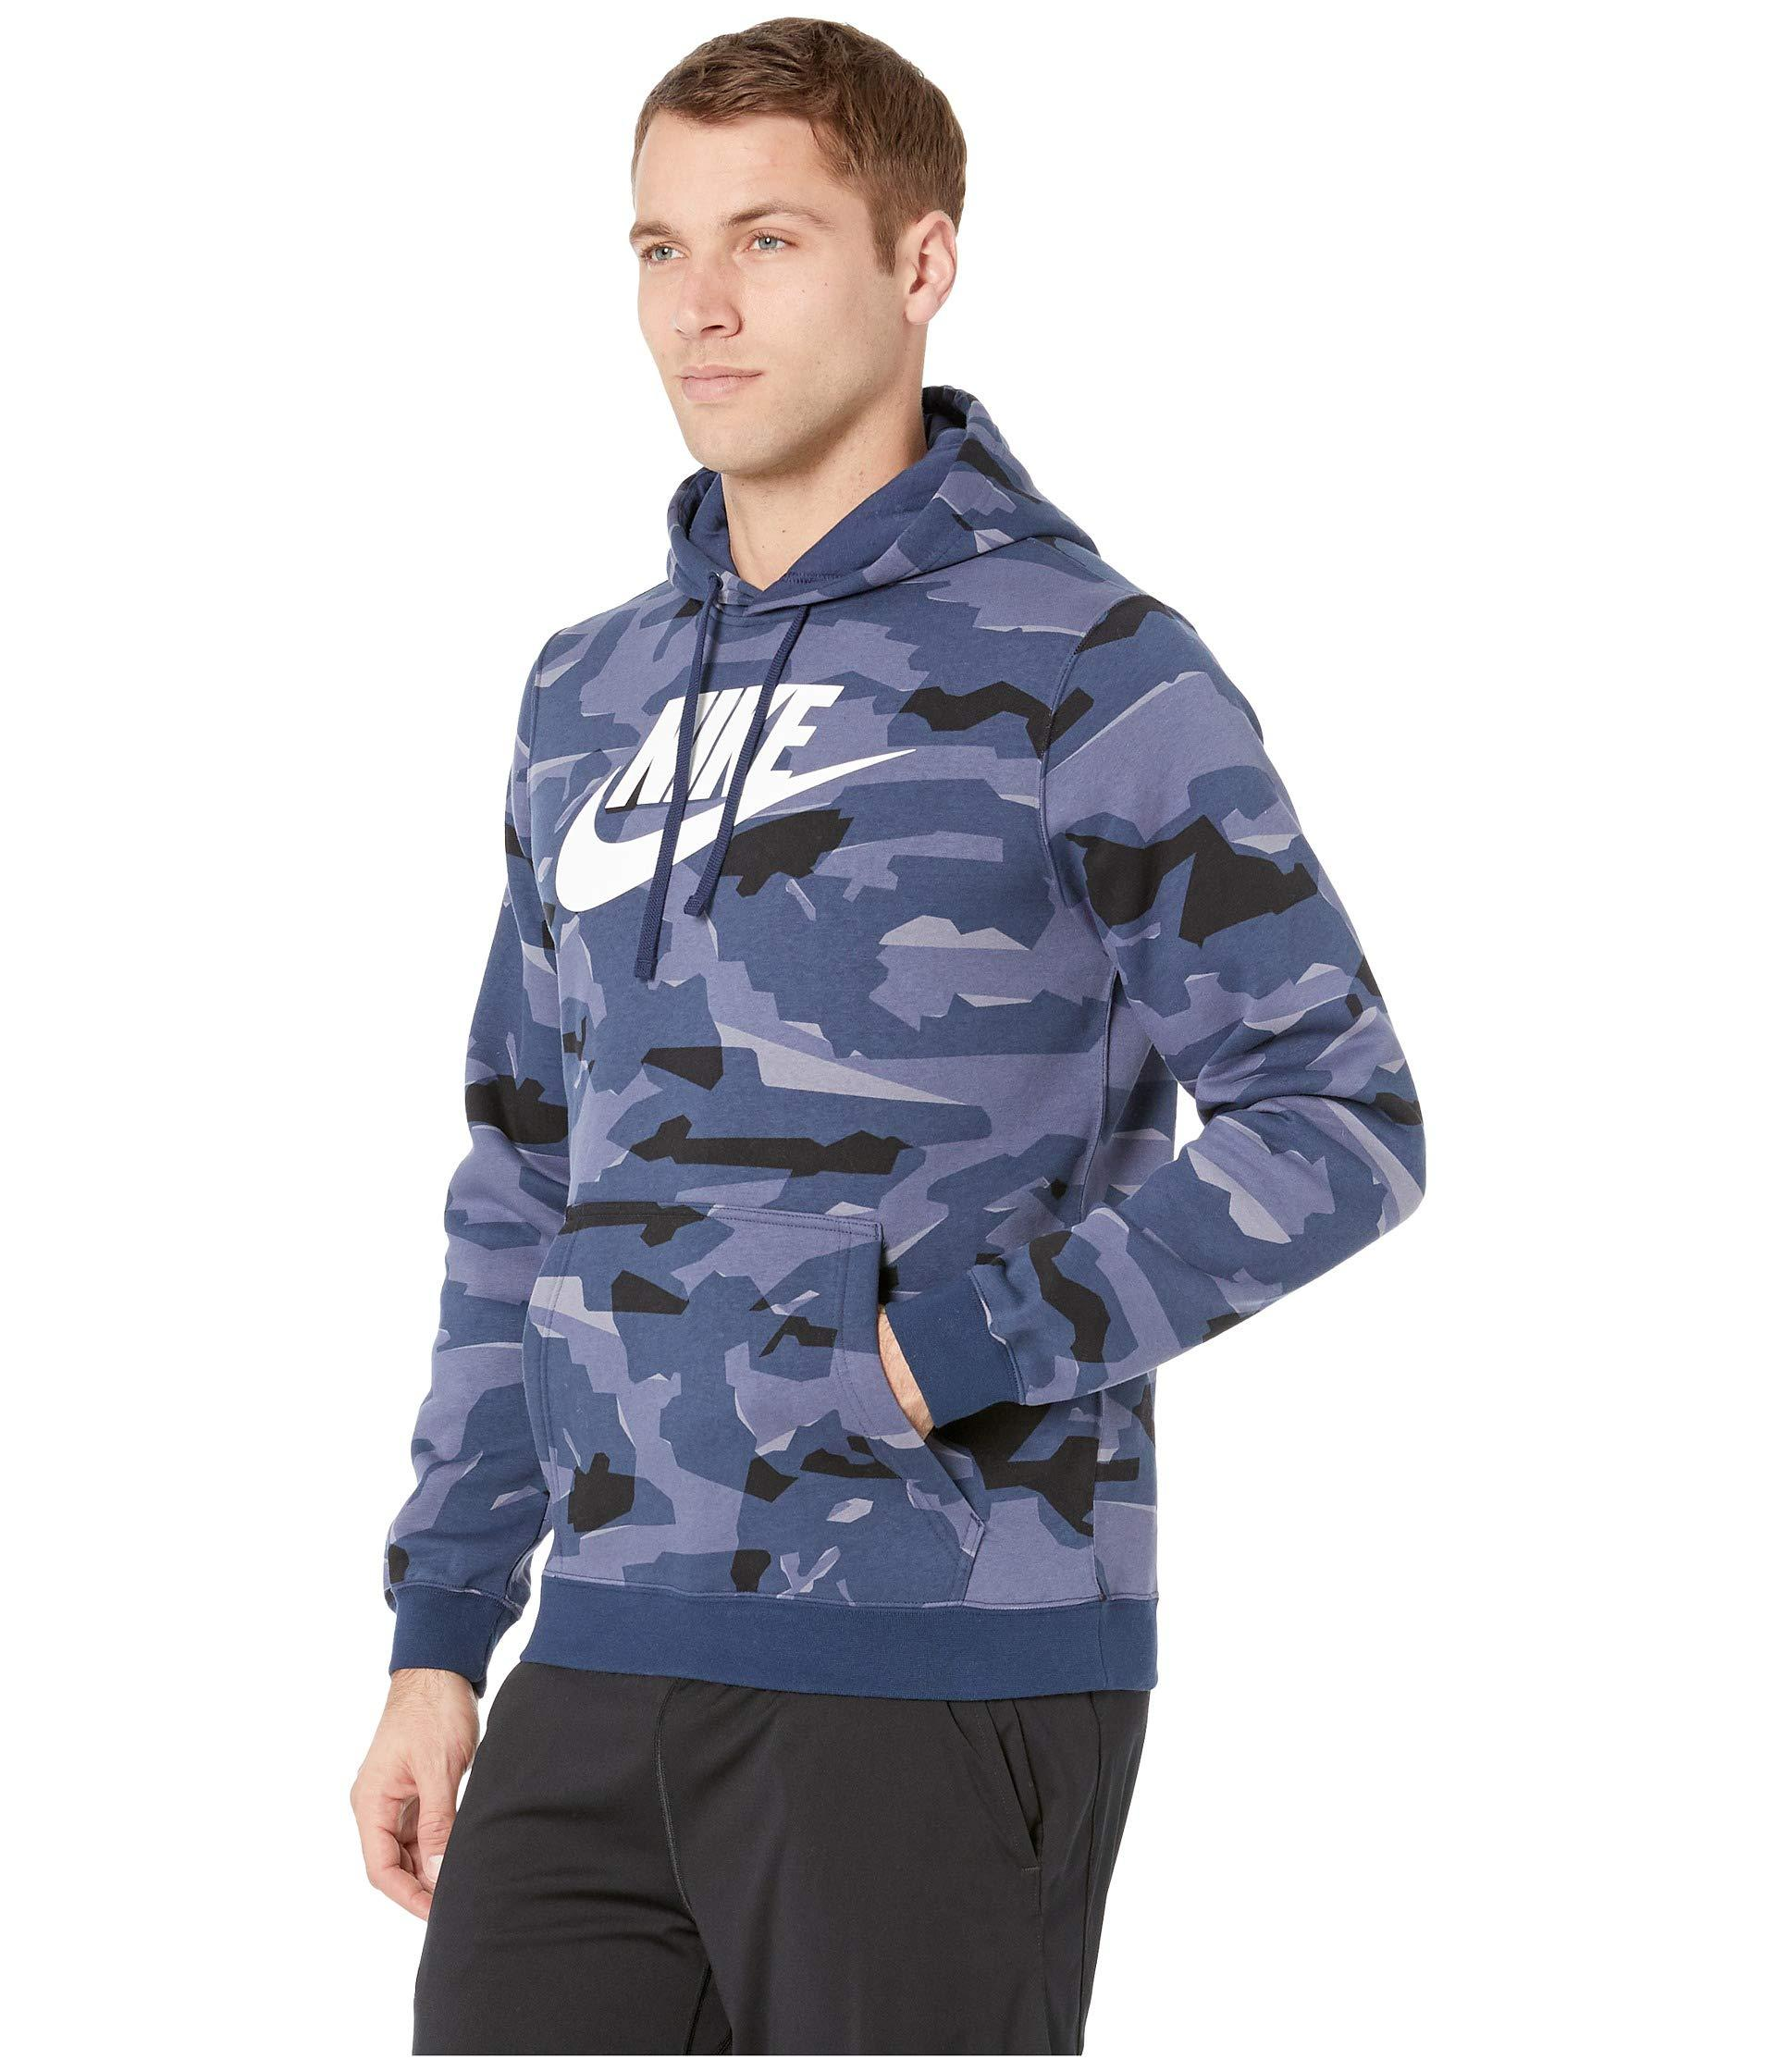 75691d315feb Lyst - Nike Nsw Club Camo Pullover Hoodie in Blue for Men